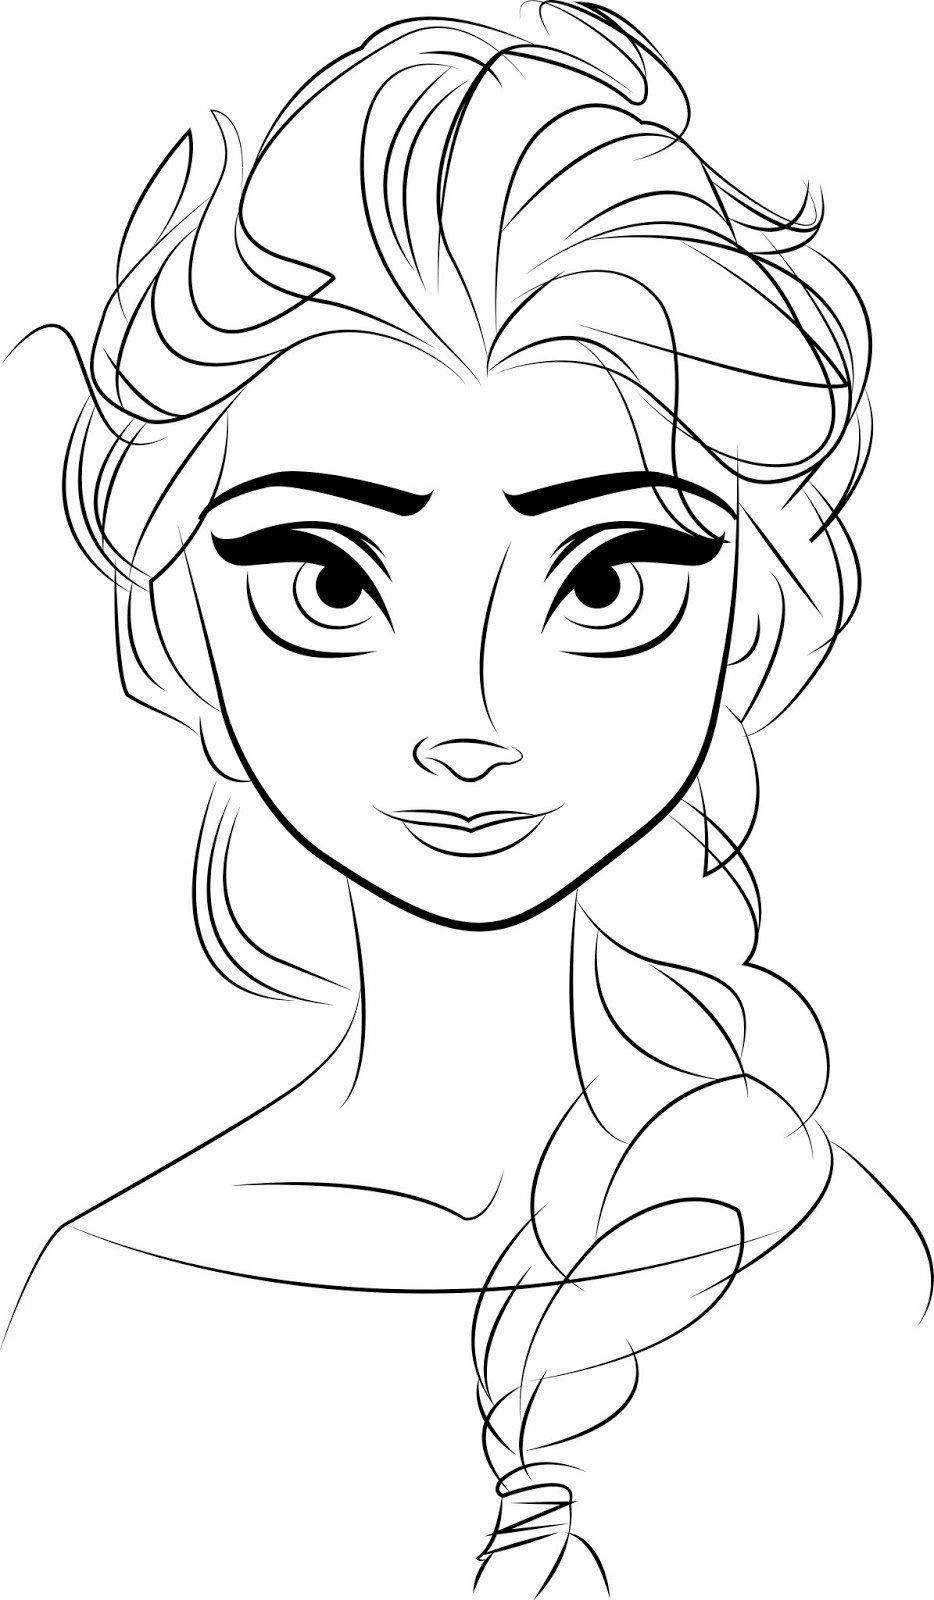 28 Elsa Frozen Coloring Page in 2020 Elsa coloring pages